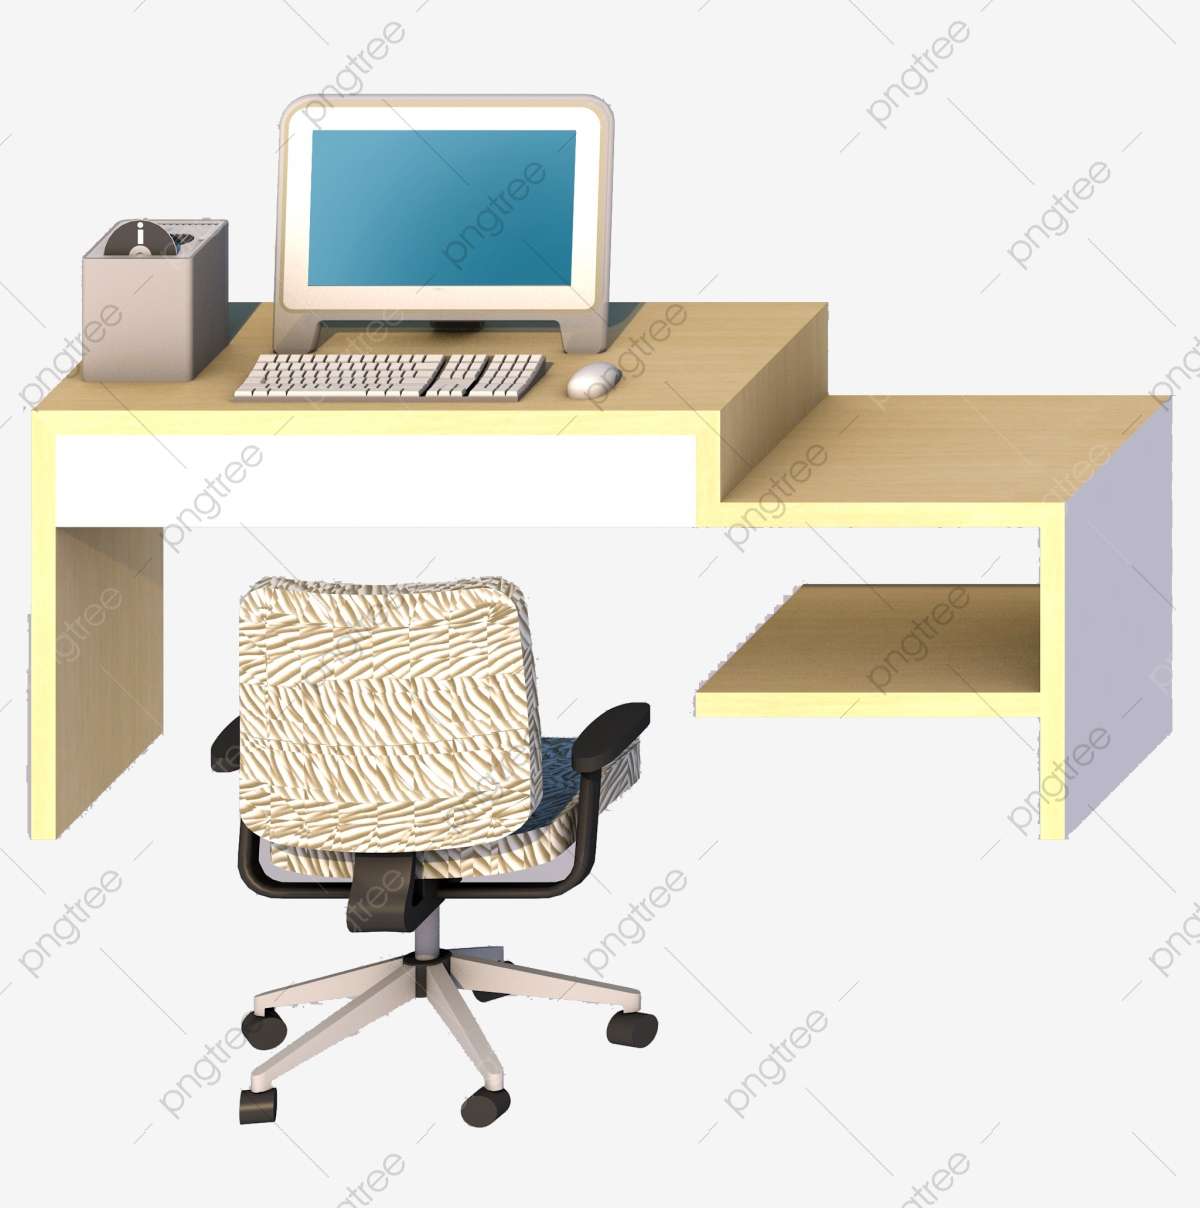 Computer Desk Png Images Vector And Psd Files Free Download On Pngtree